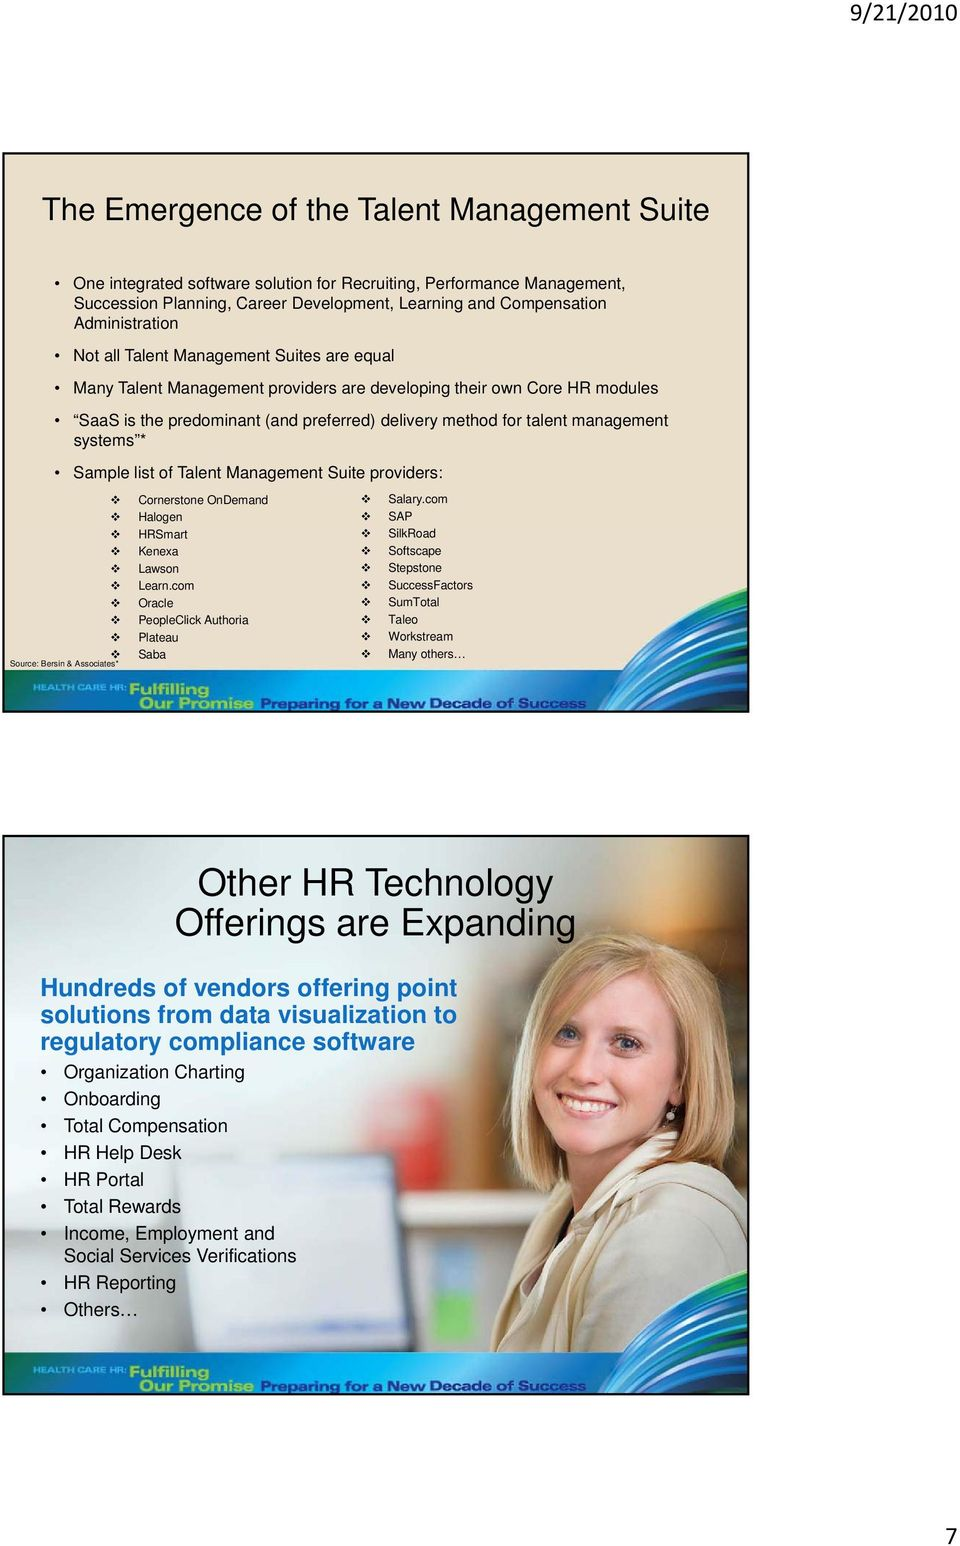 systems * Sample list of Talent Management Suite providers: Source: Bersin & Associates* Cornerstone OnDemand Halogen HRSmart Kenexa Lawson Learn.com Oracle PeopleClick Authoria Plateau Saba Salary.